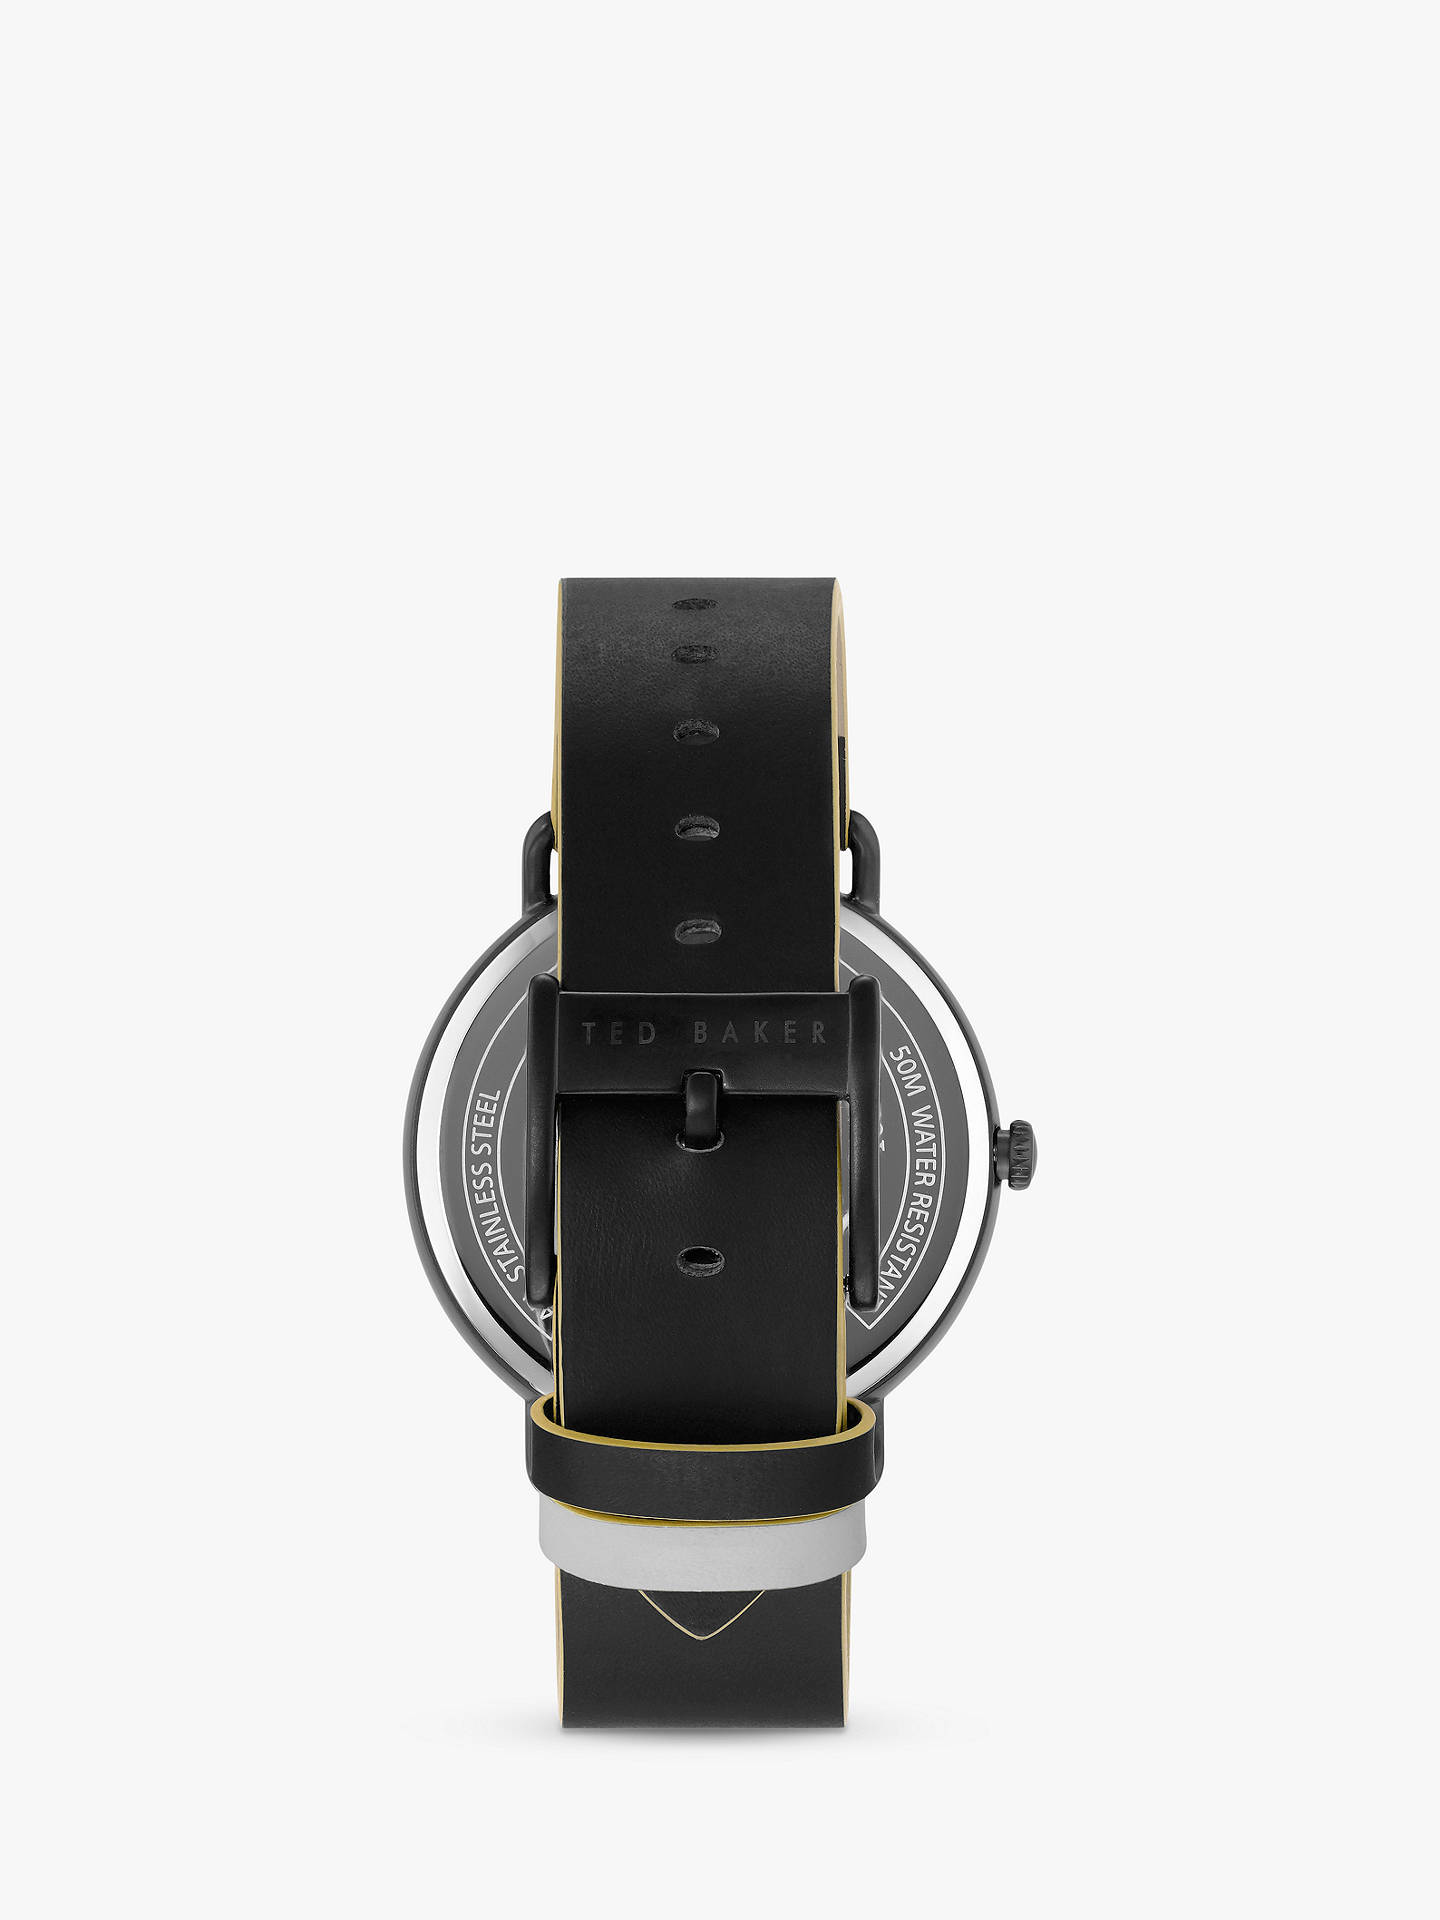 BuyTed Baker TE50520003 Men's George Leather Strap Watch, Black Online at johnlewis.com